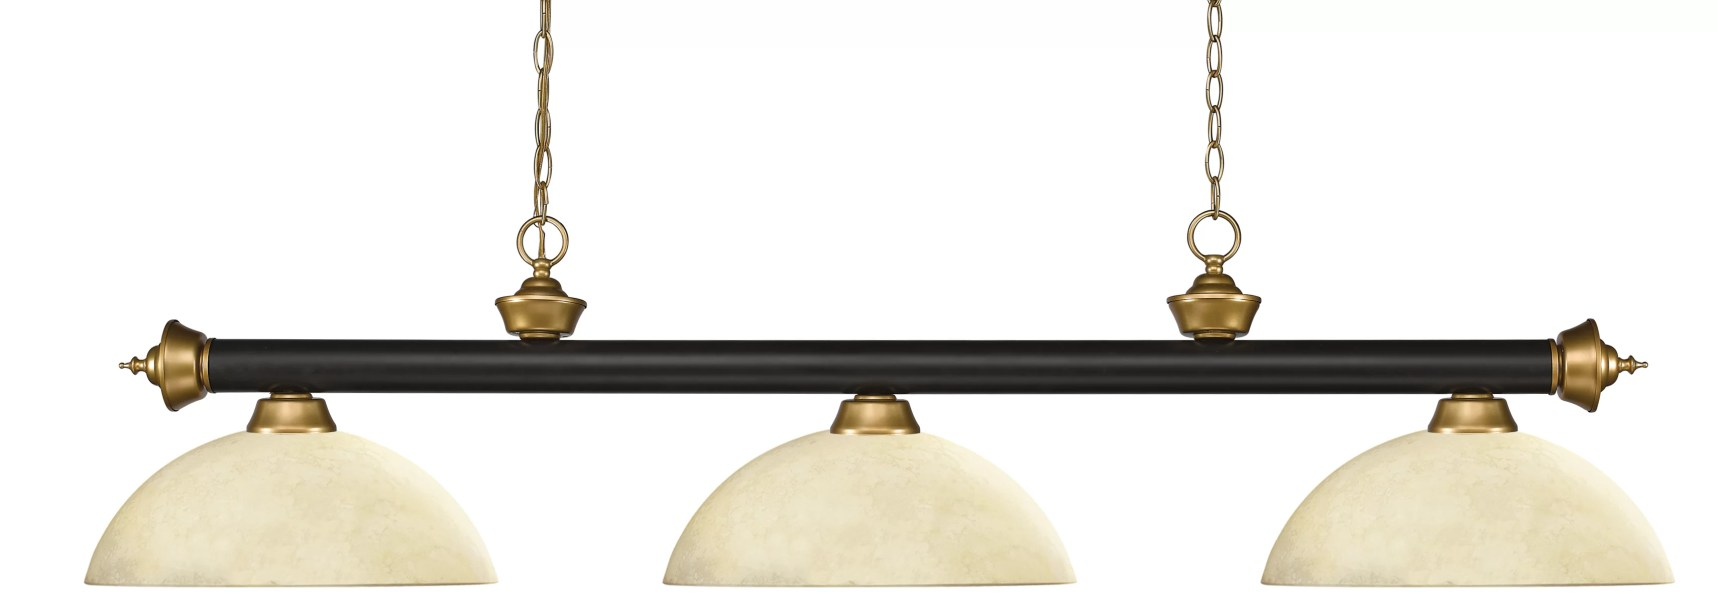 Brynlee 3 - Light Pool Table Lights Linear Pendant